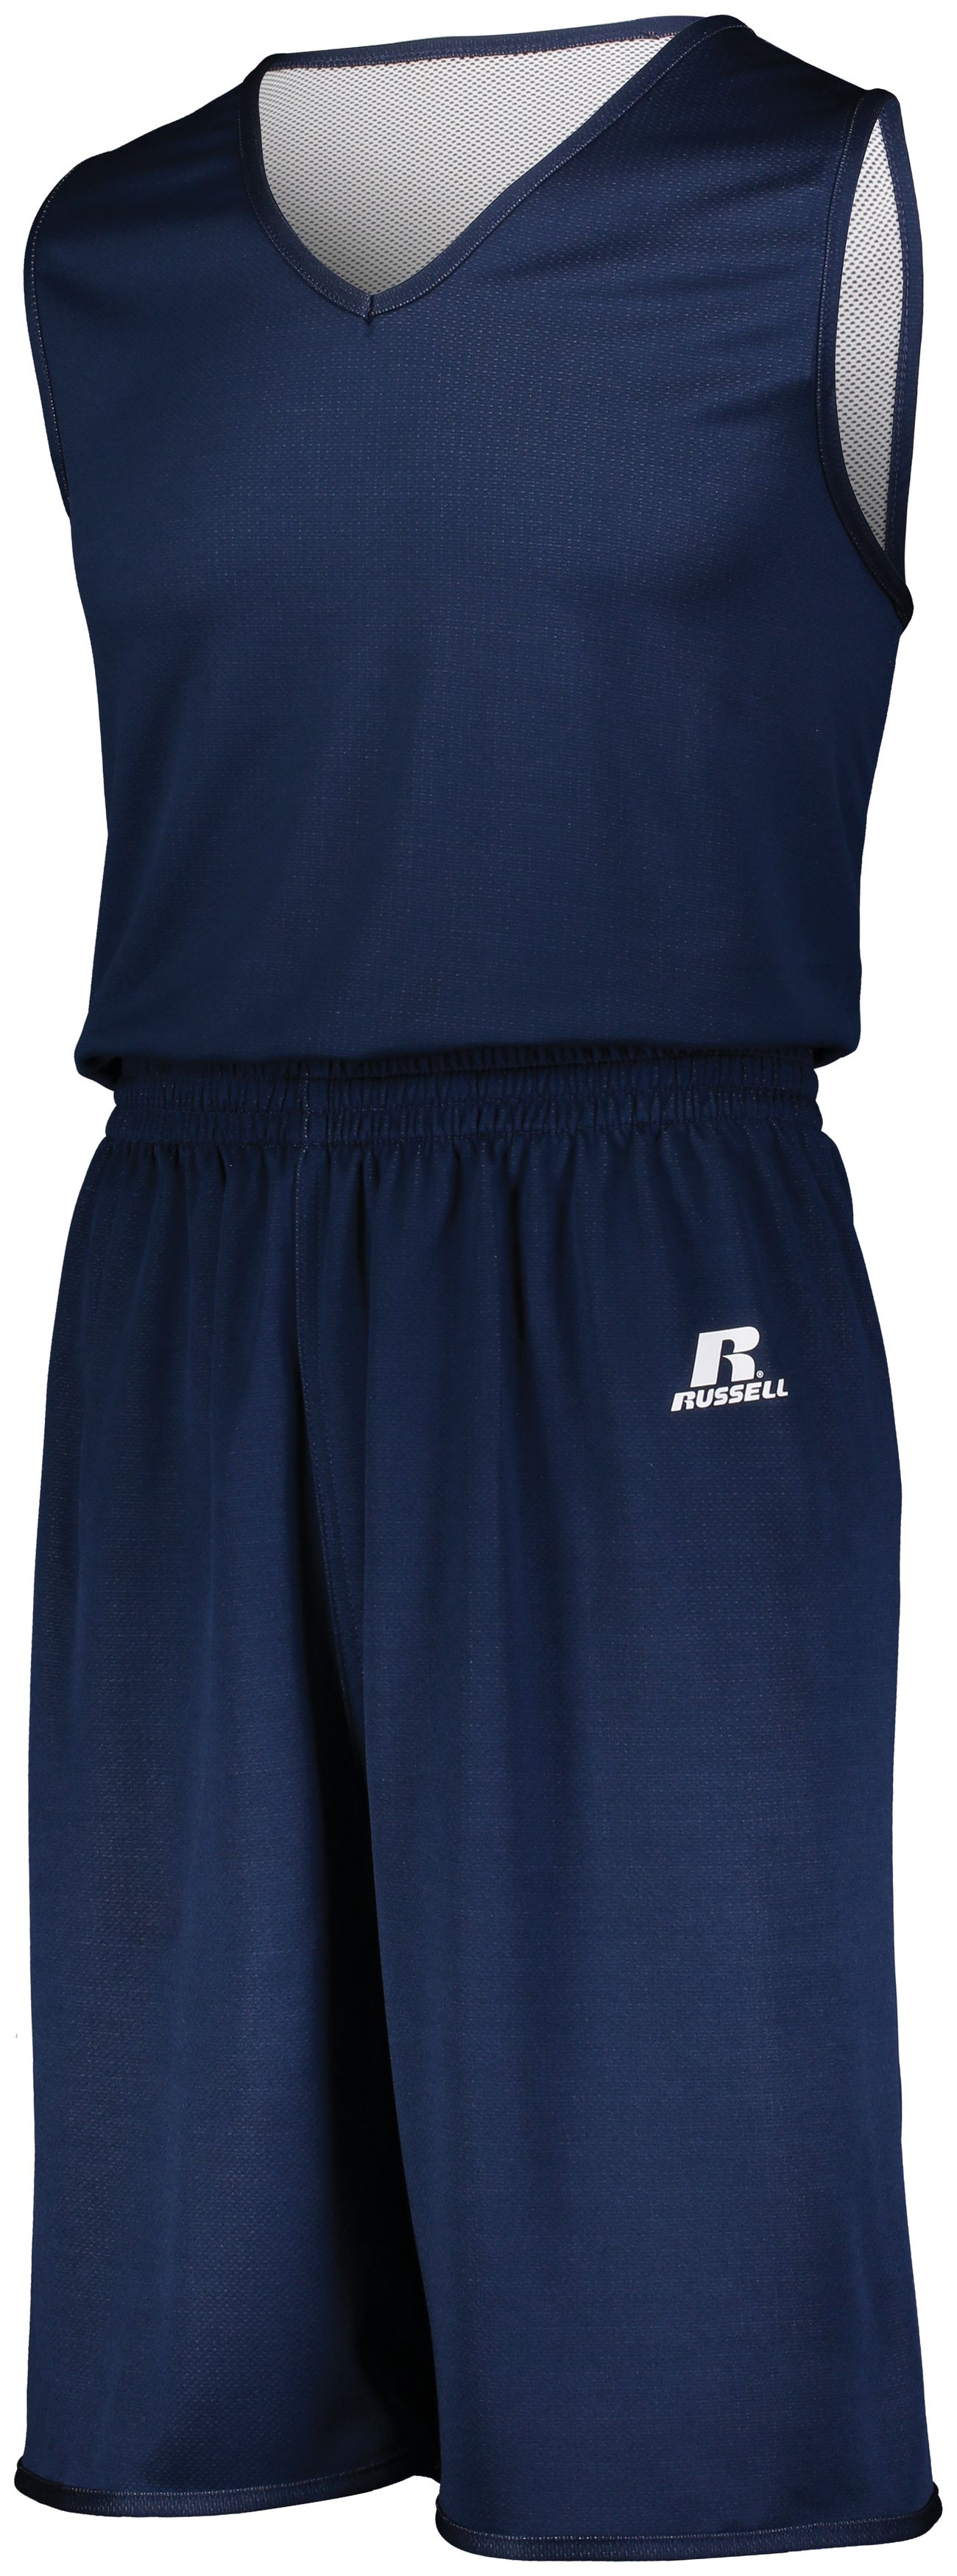 Youth Undivided Solid Single Ply Reversible Shorts - NAVY/WHITE